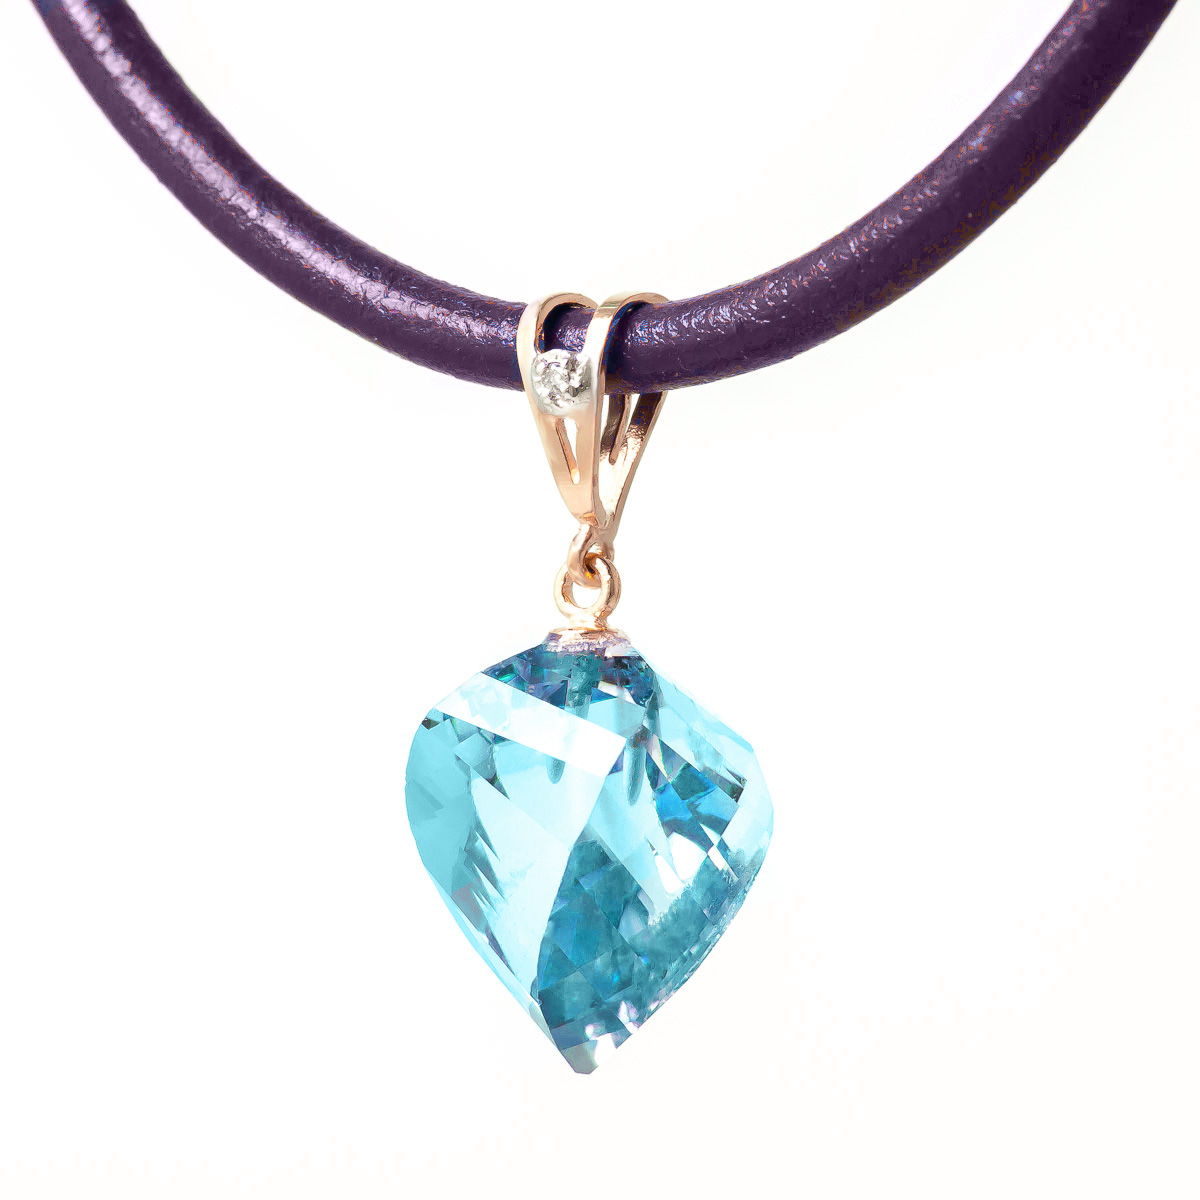 Blue Topaz and Diamond Pendant Necklace 13.9ct in 9ct Rose Gold